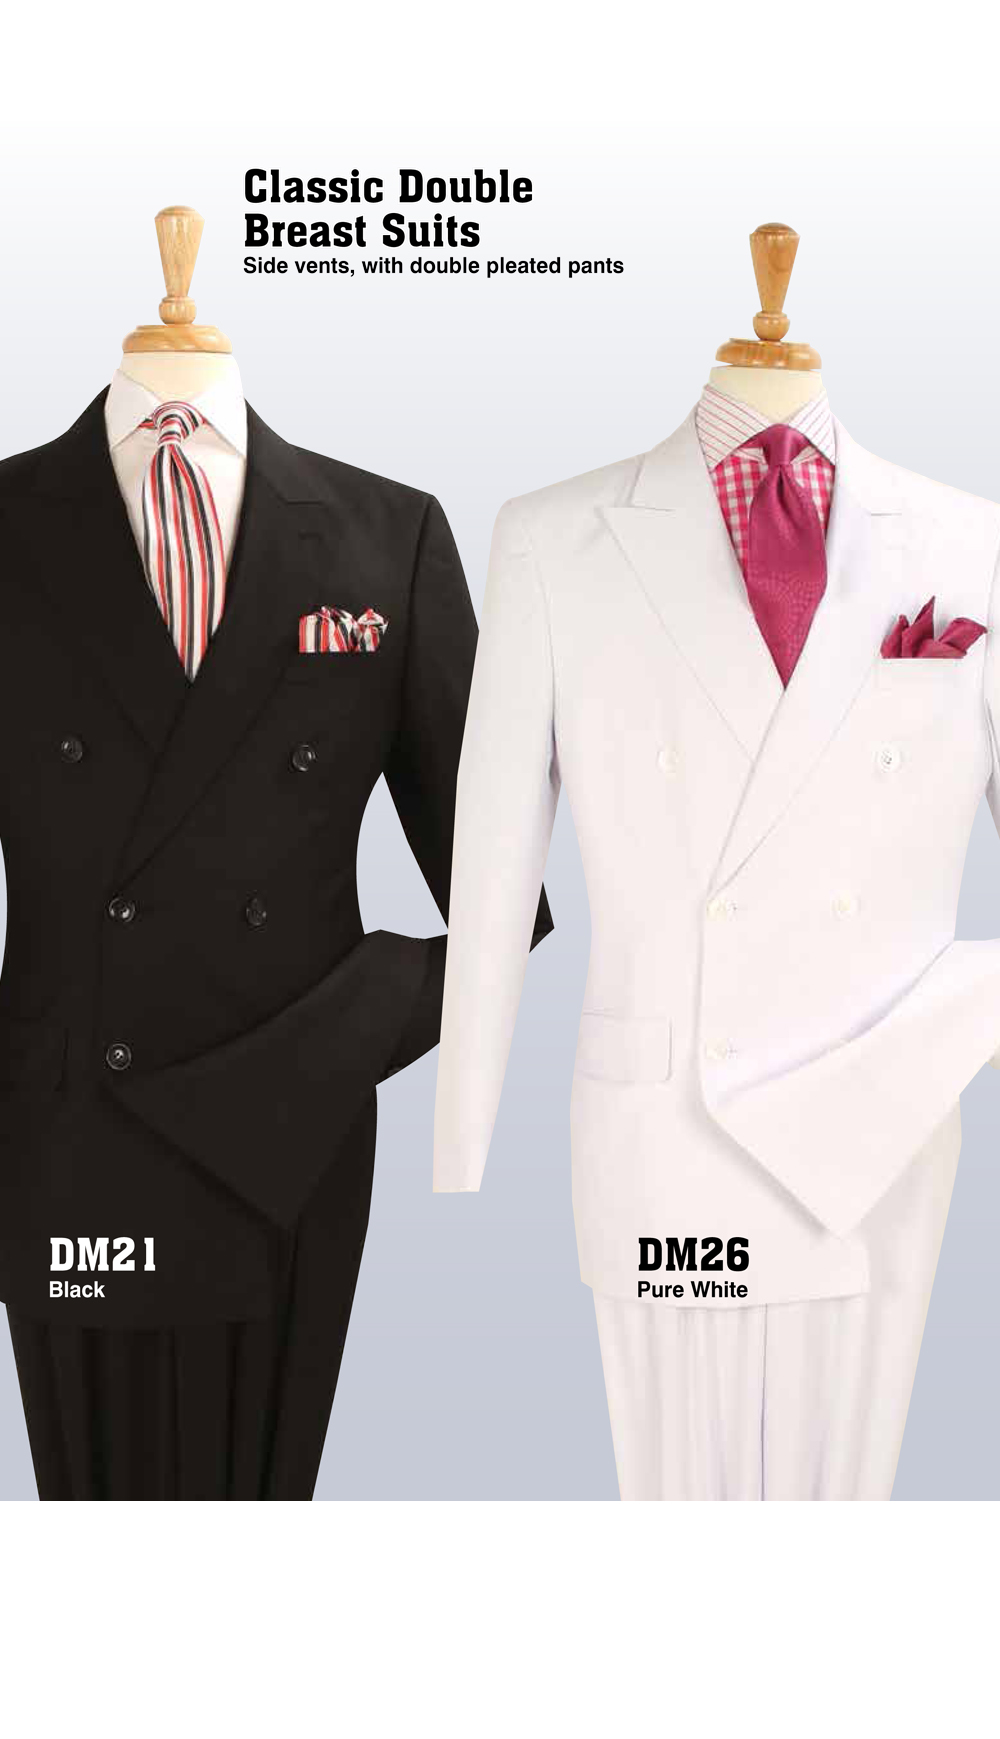 High Fashion Men Suits DM21